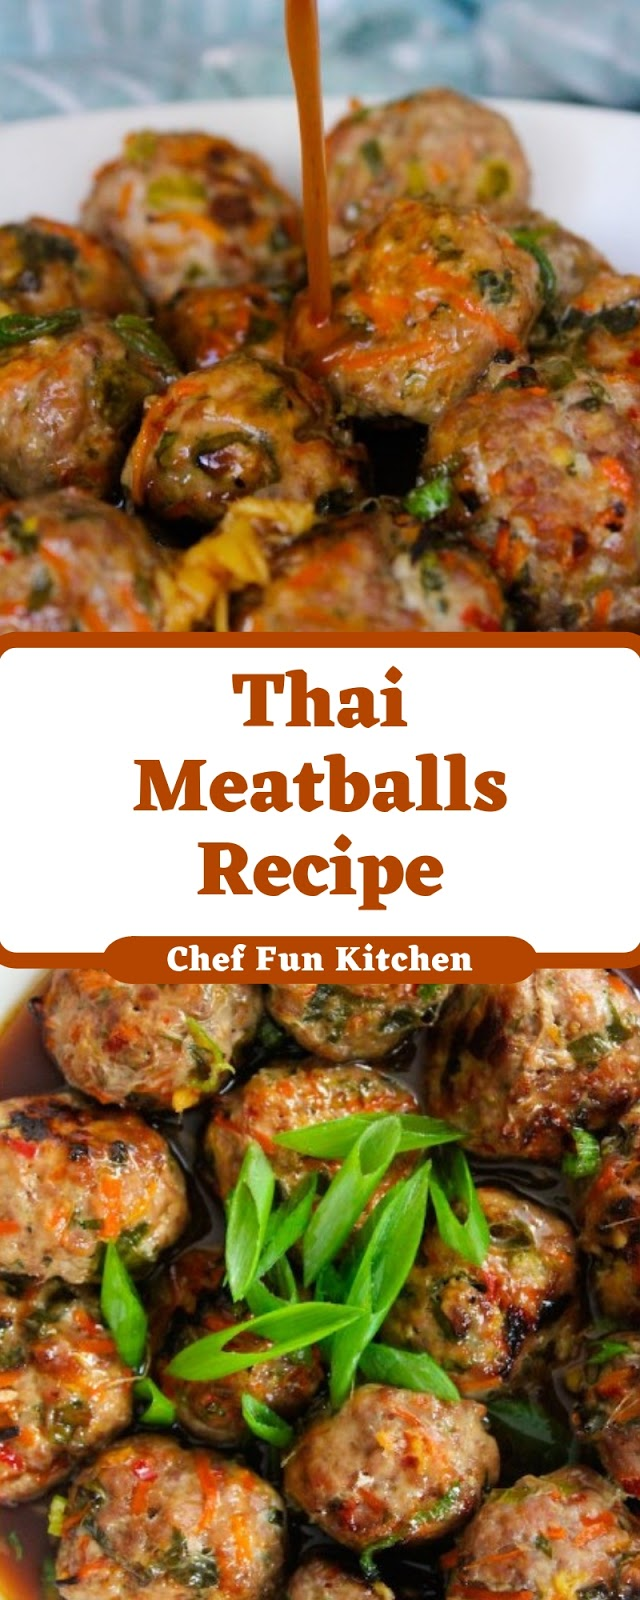 Thai Meatballs Recipe